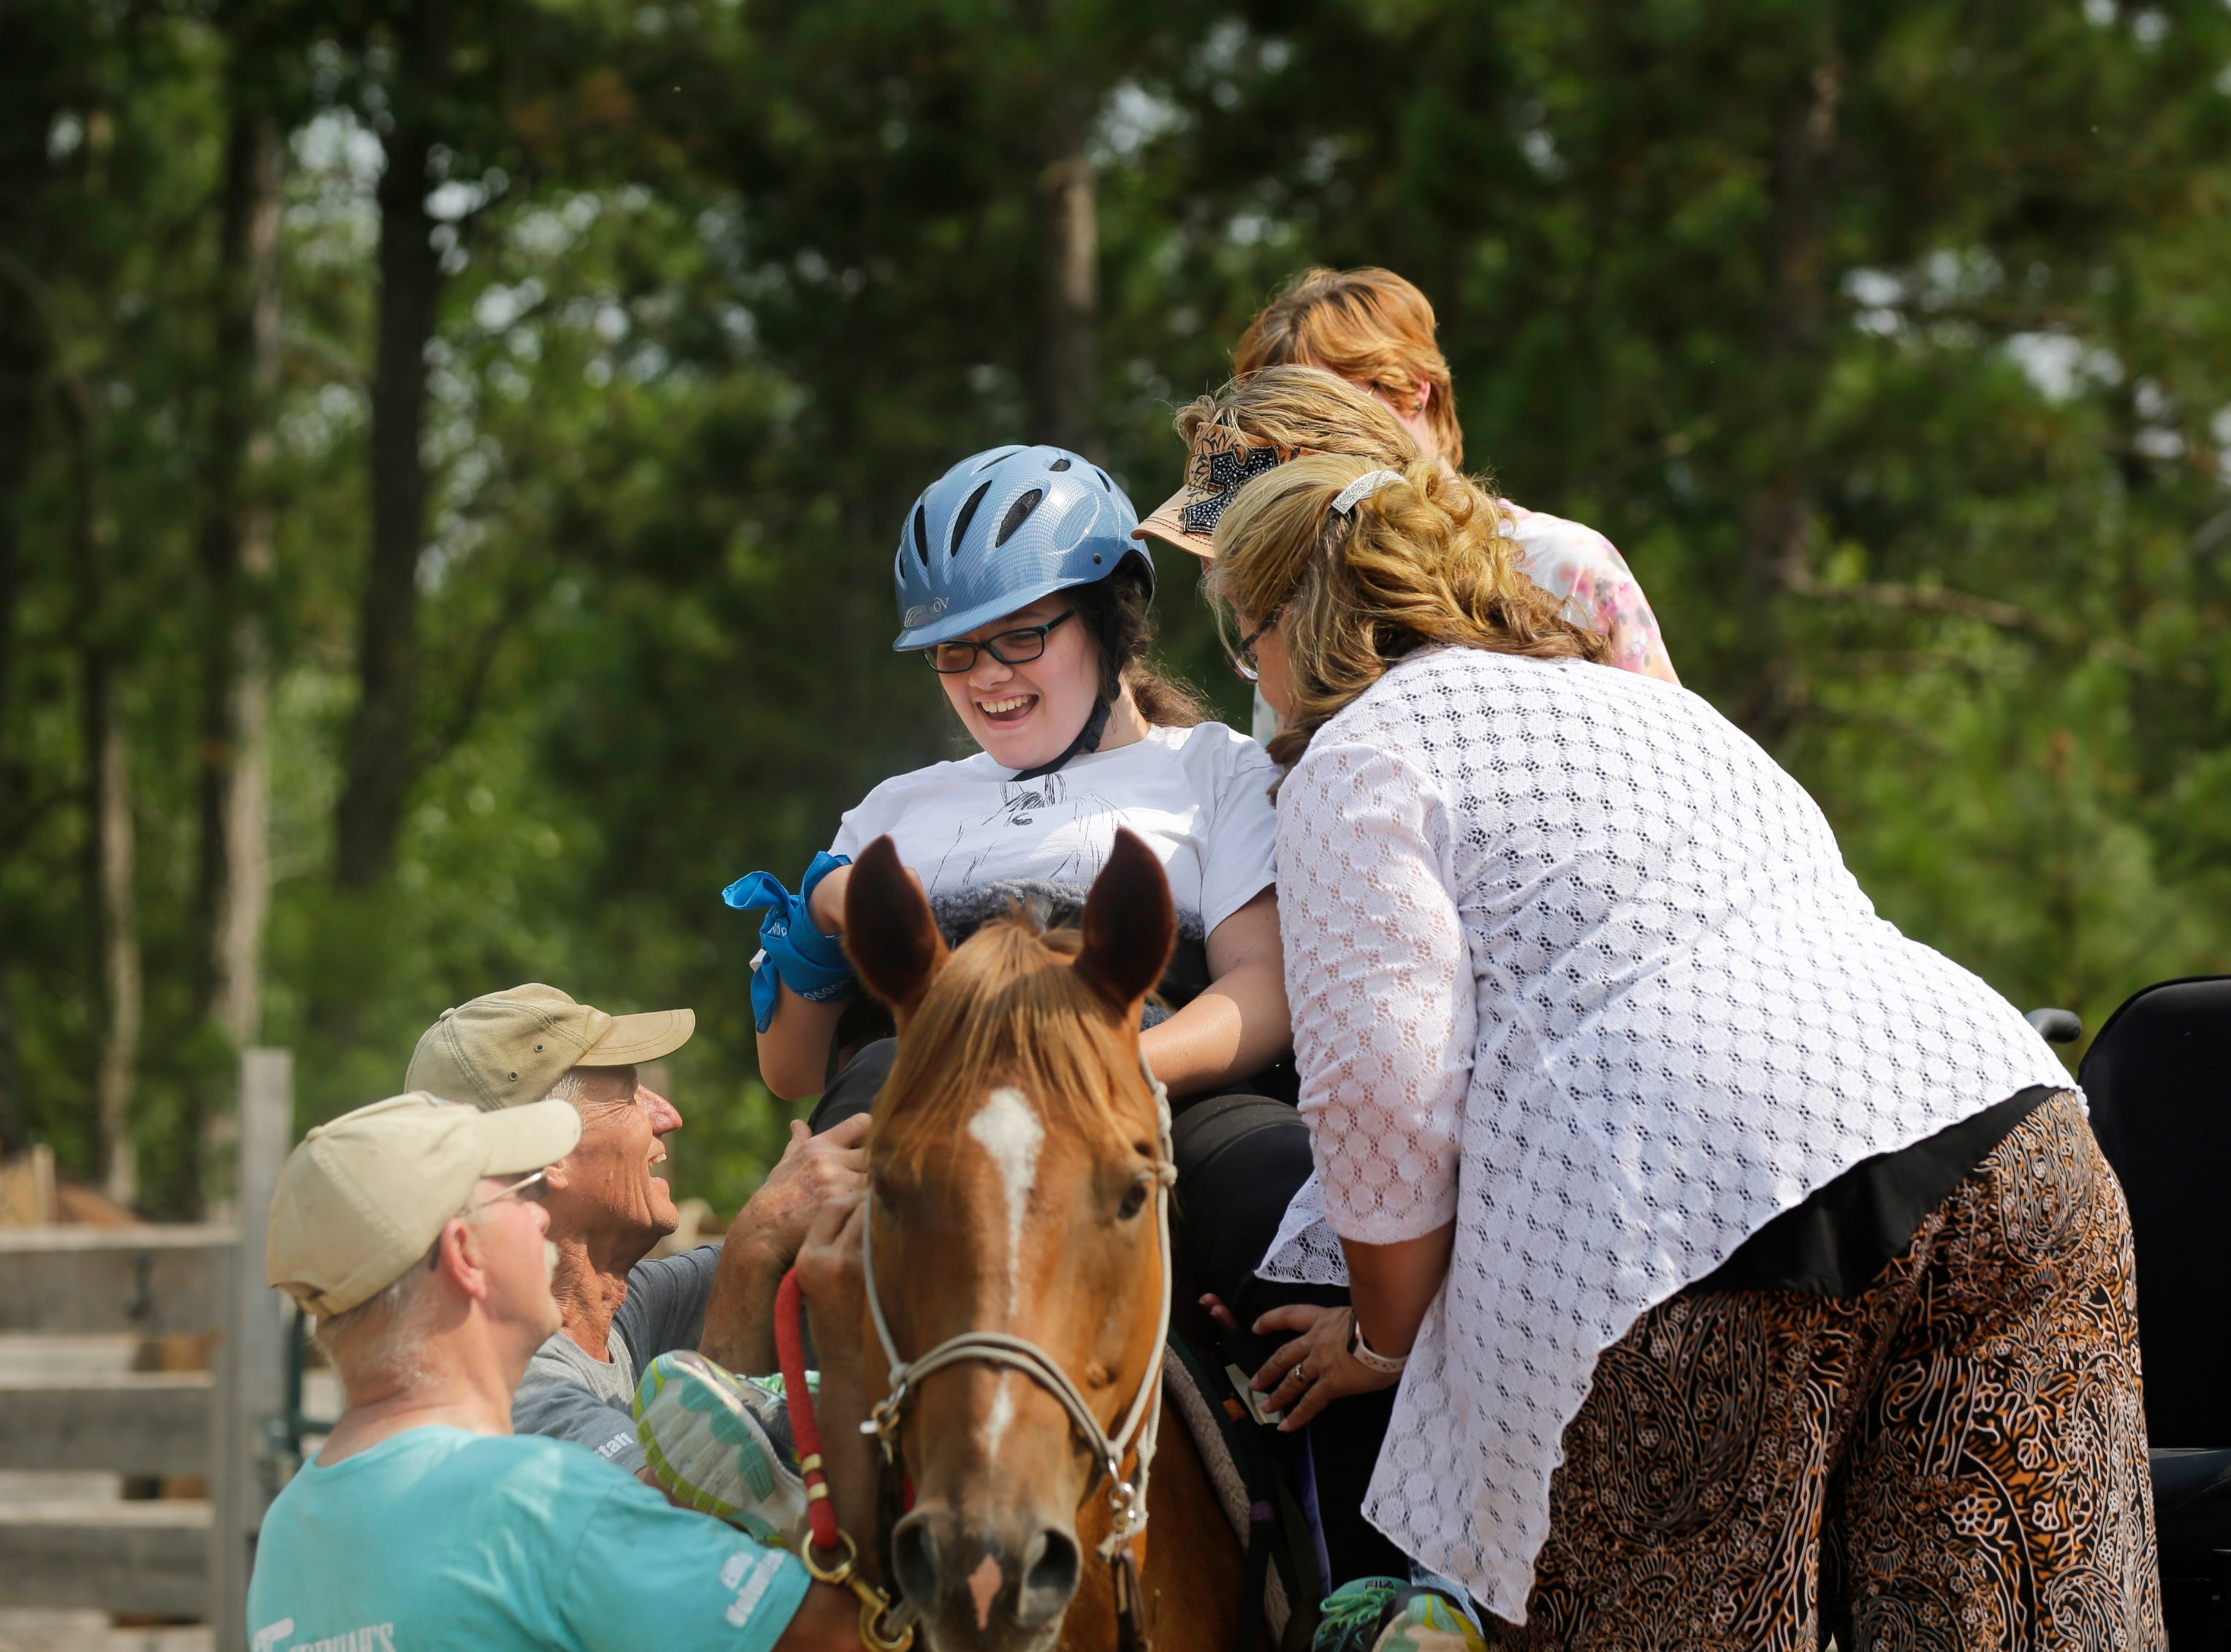 Scedra Stoffel smiles as she is helped onto Alan the horse by Kathleen Harris, her mother Julie Stoffel and three volunteers during the Jeremiah's Crossing ride-a-thon event Sunday, August 19, 2018 in Babcock, Wis.